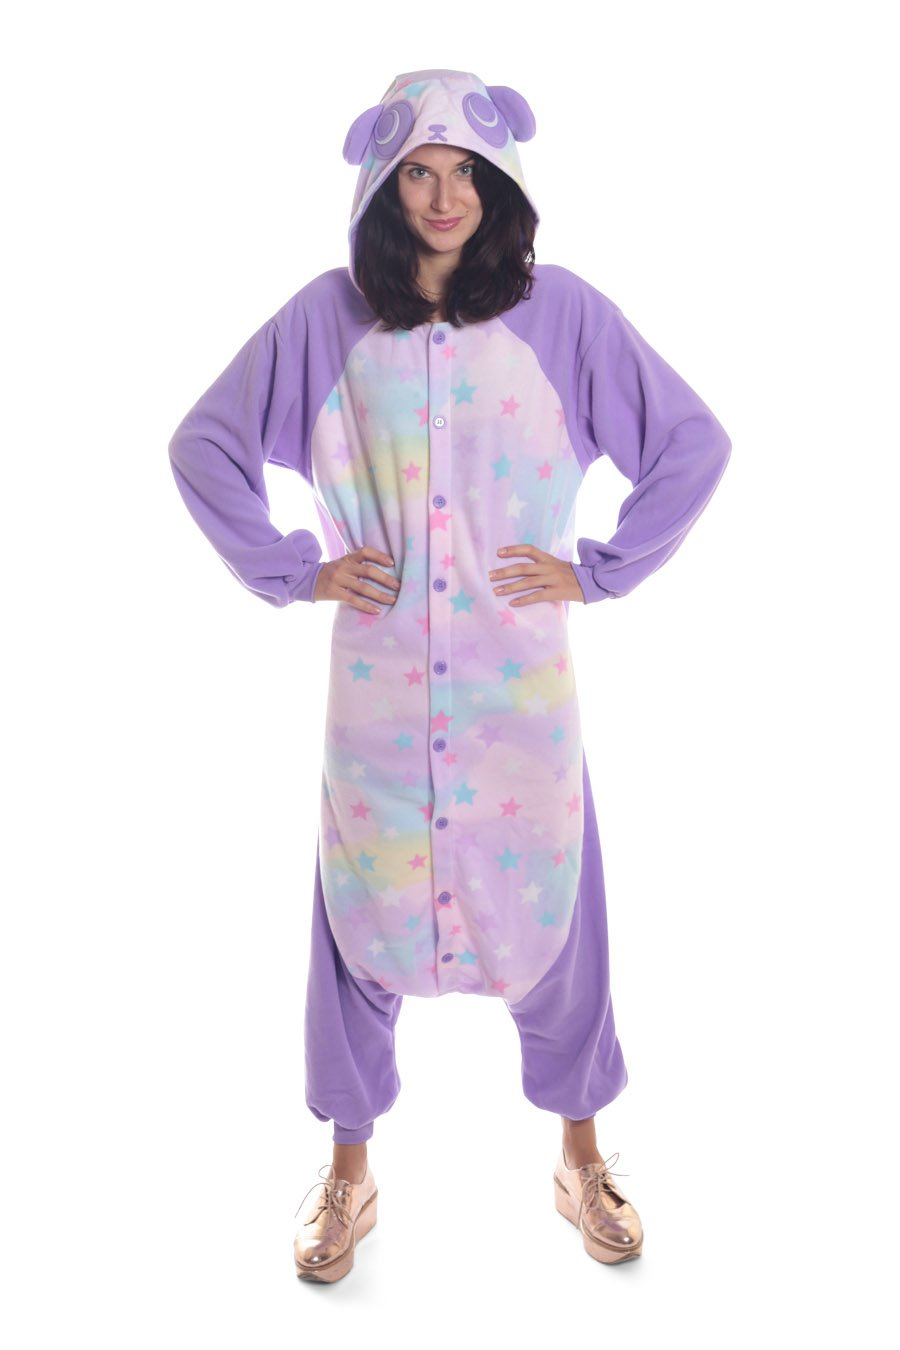 Pastel Dream Panda Animal Kigurumi Adult Onesie Costume Pajamas Main